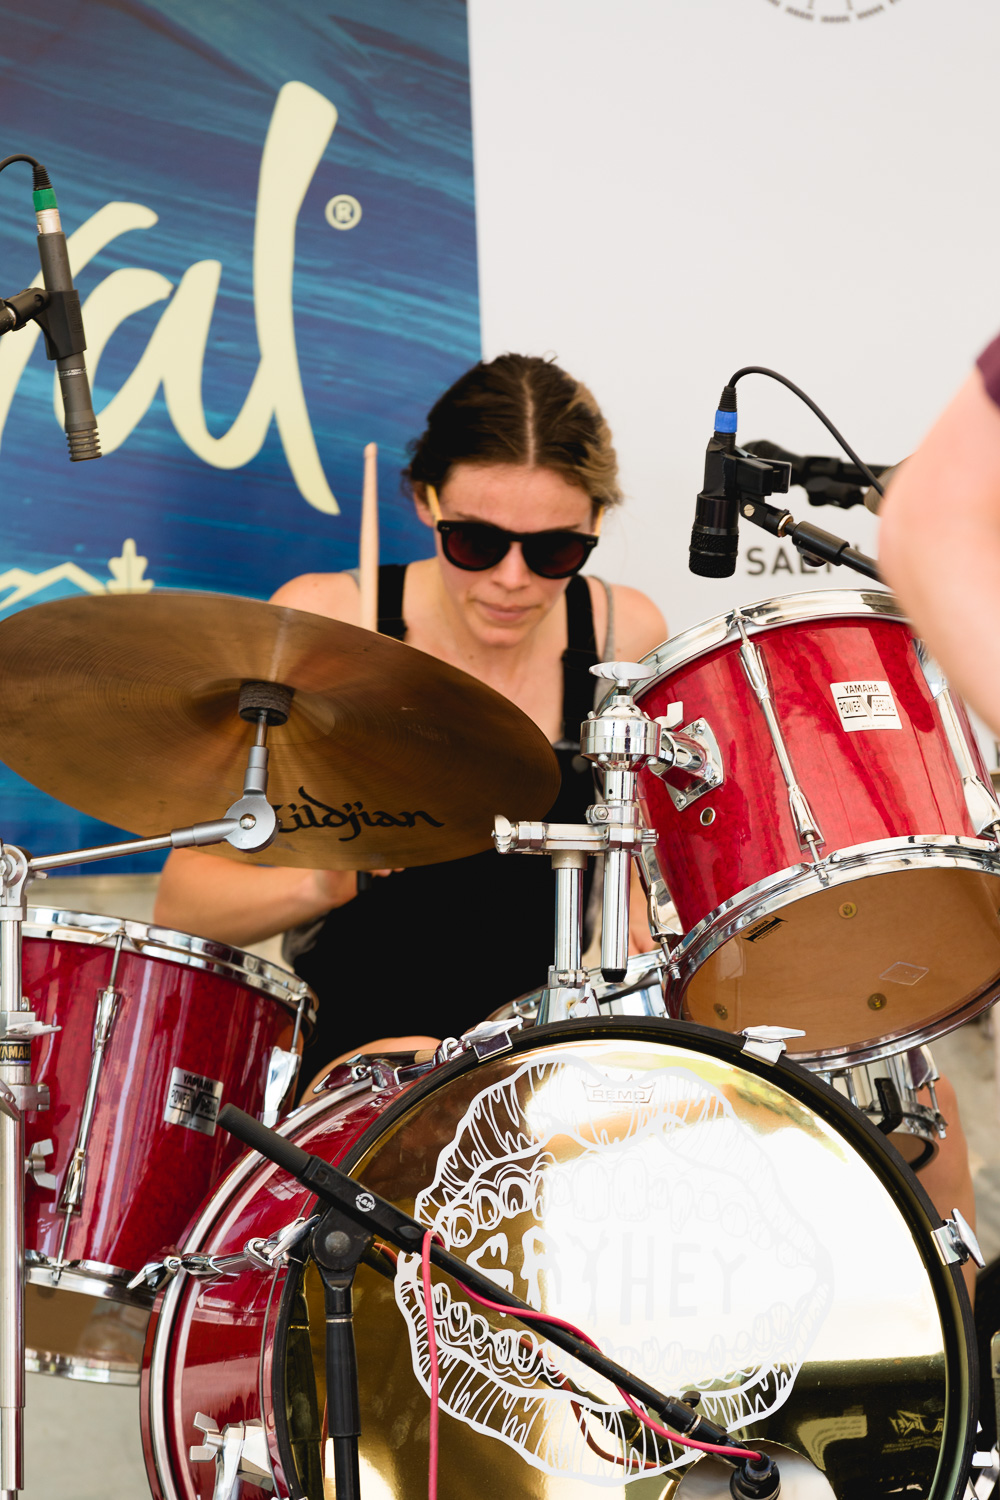 Drummer from Say Hey playing on the KRCL stage in the 10th Annual Craft Lake City DIY Festival. Photo: Lmsorenson.net